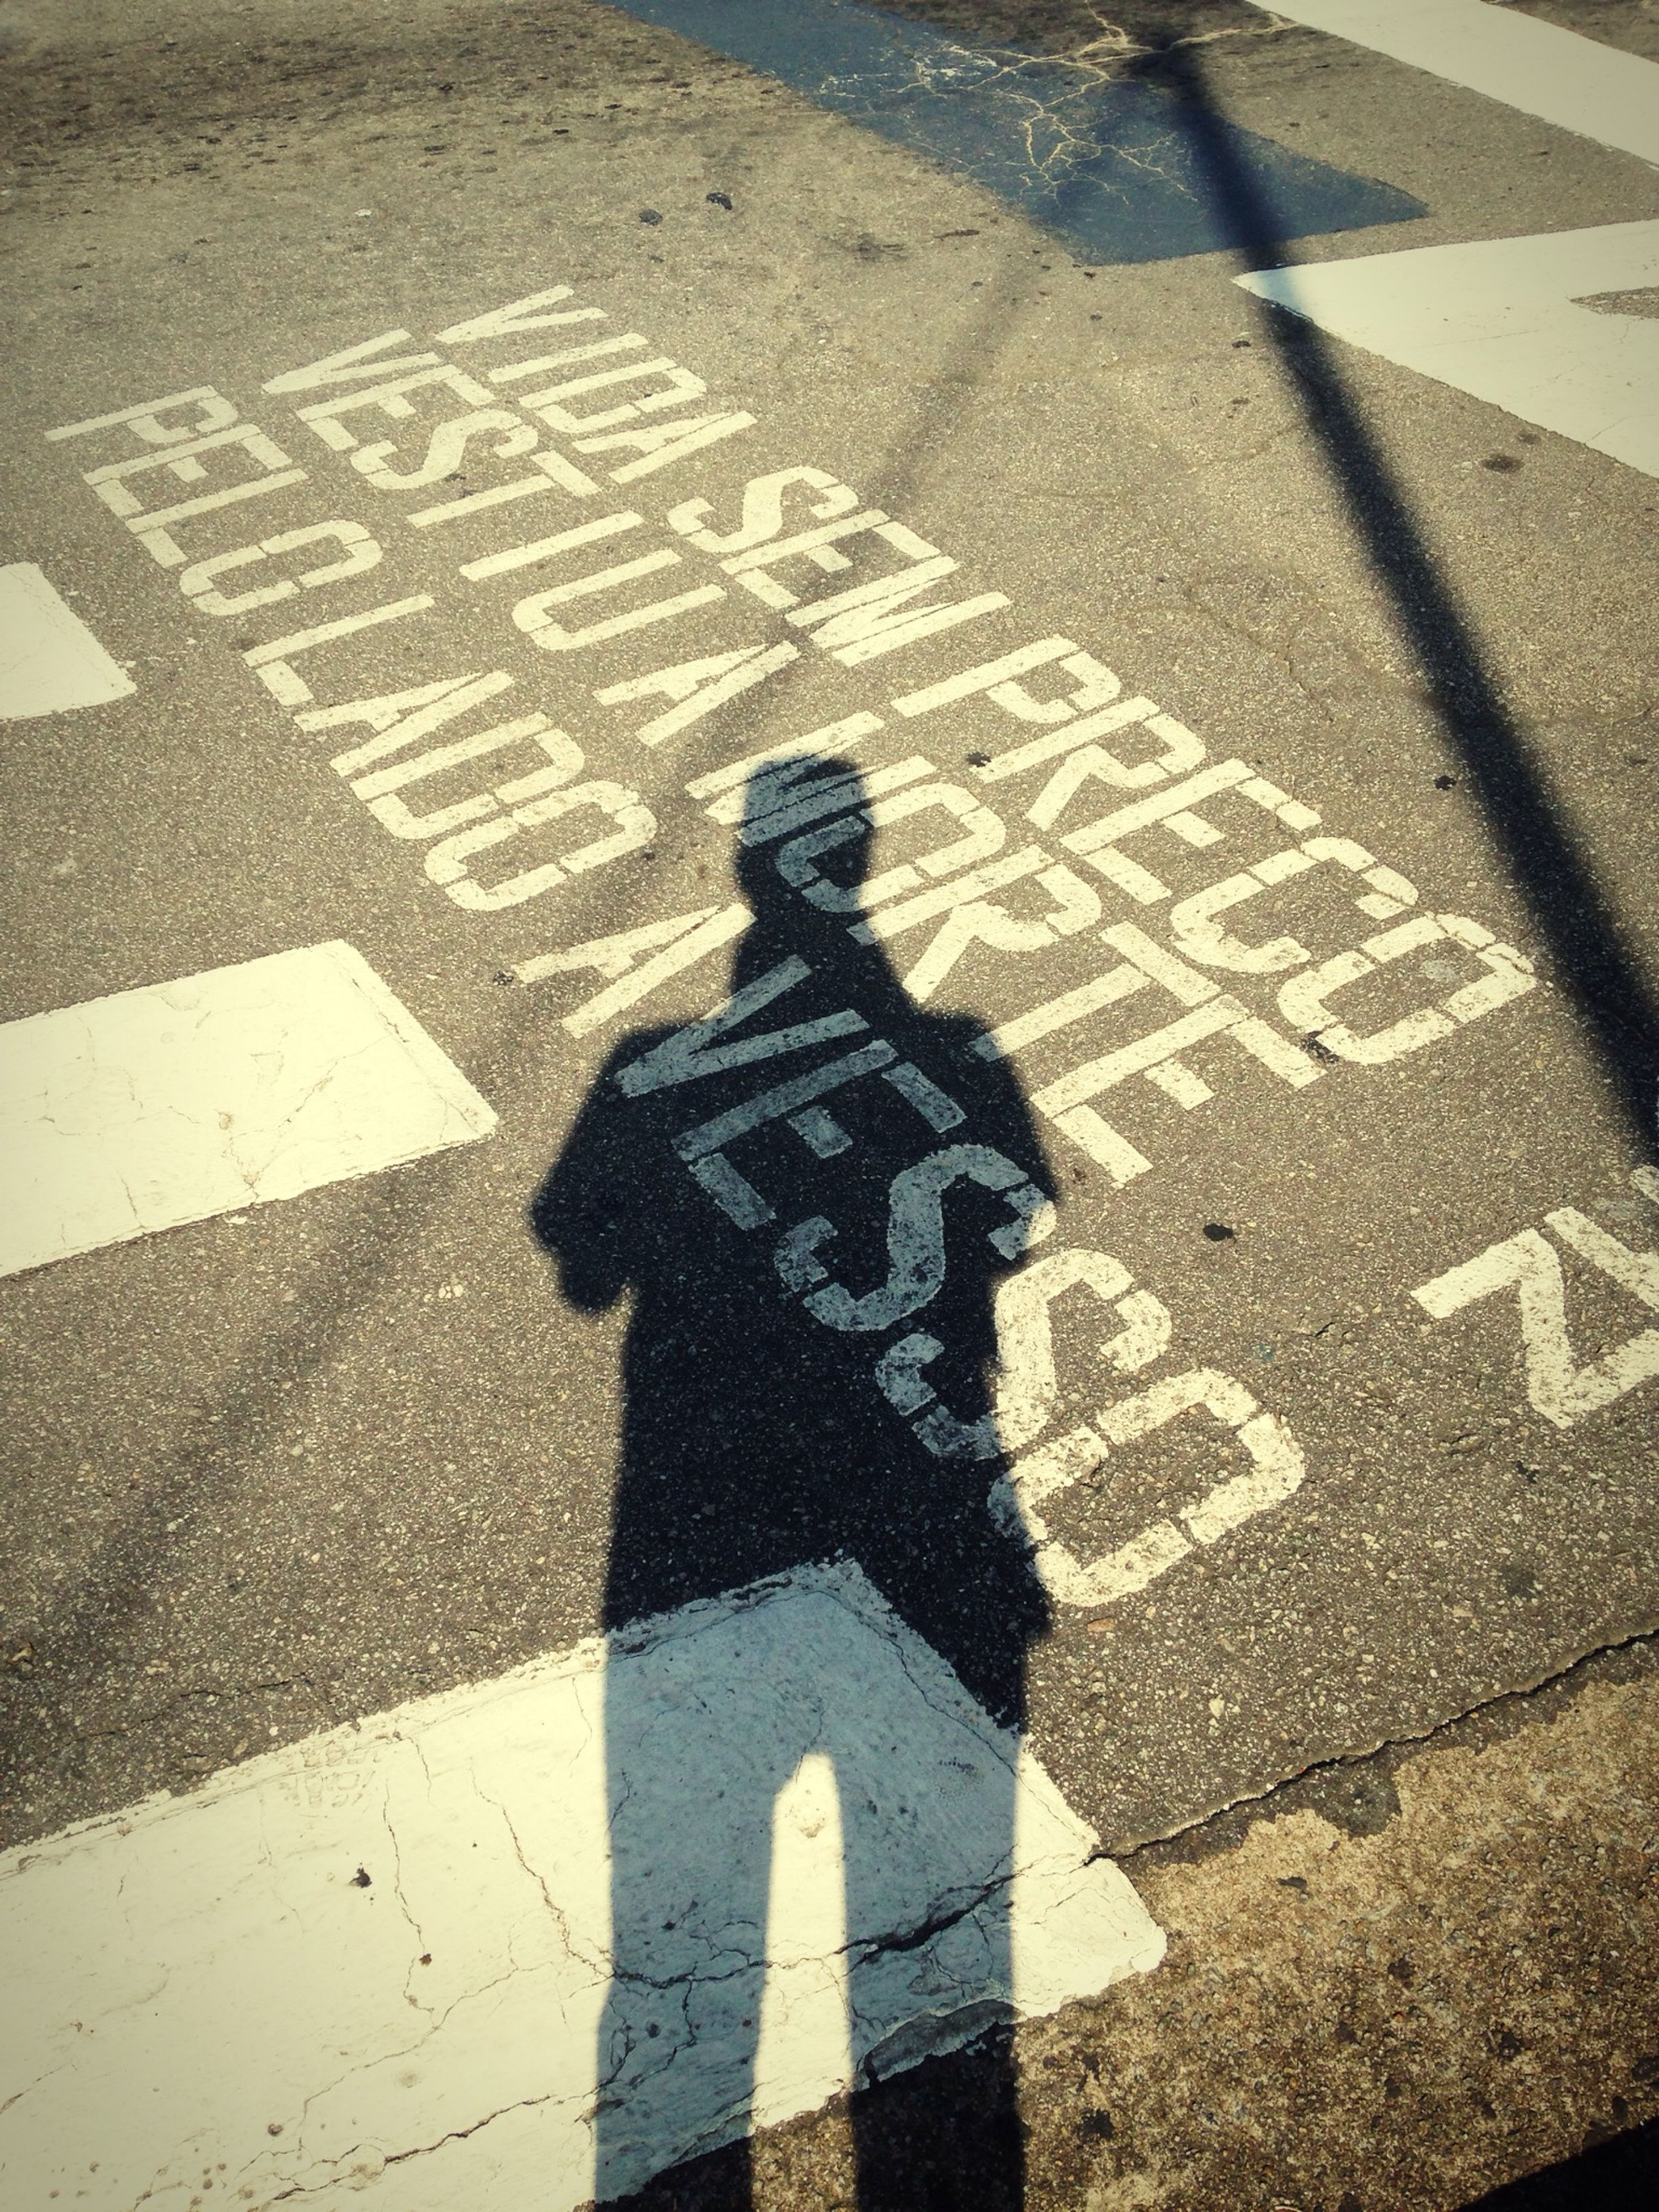 high angle view, shadow, street, road marking, focus on shadow, standing, road, sunlight, lifestyles, asphalt, men, communication, unrecognizable person, leisure activity, day, human representation, low section, text